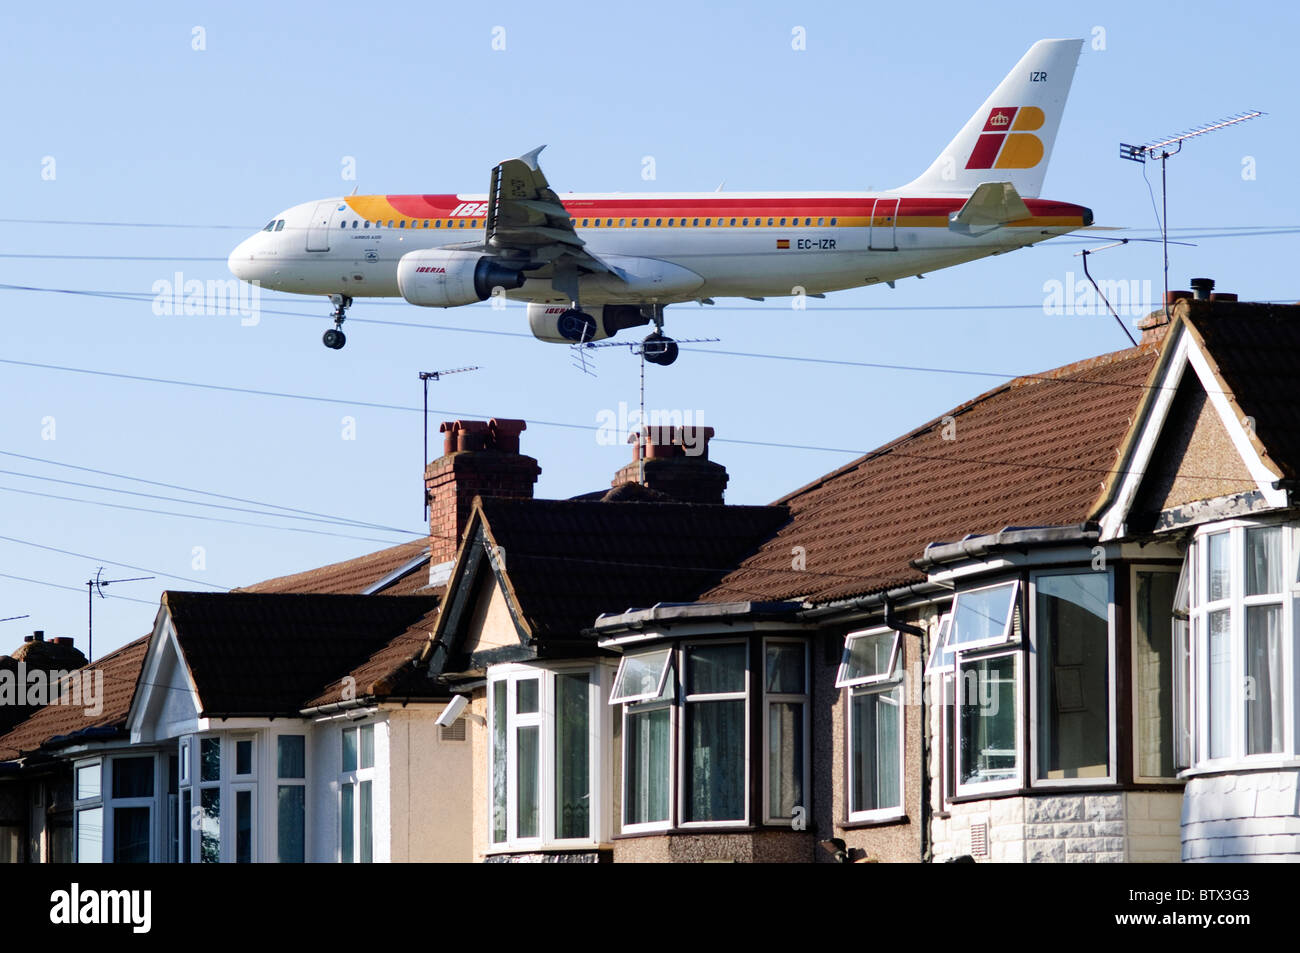 Iberia Airbus A320 approaching Heathrow runway low over Bedfont houses and rooftops, London Heathrow Airport, UK. - Stock Image